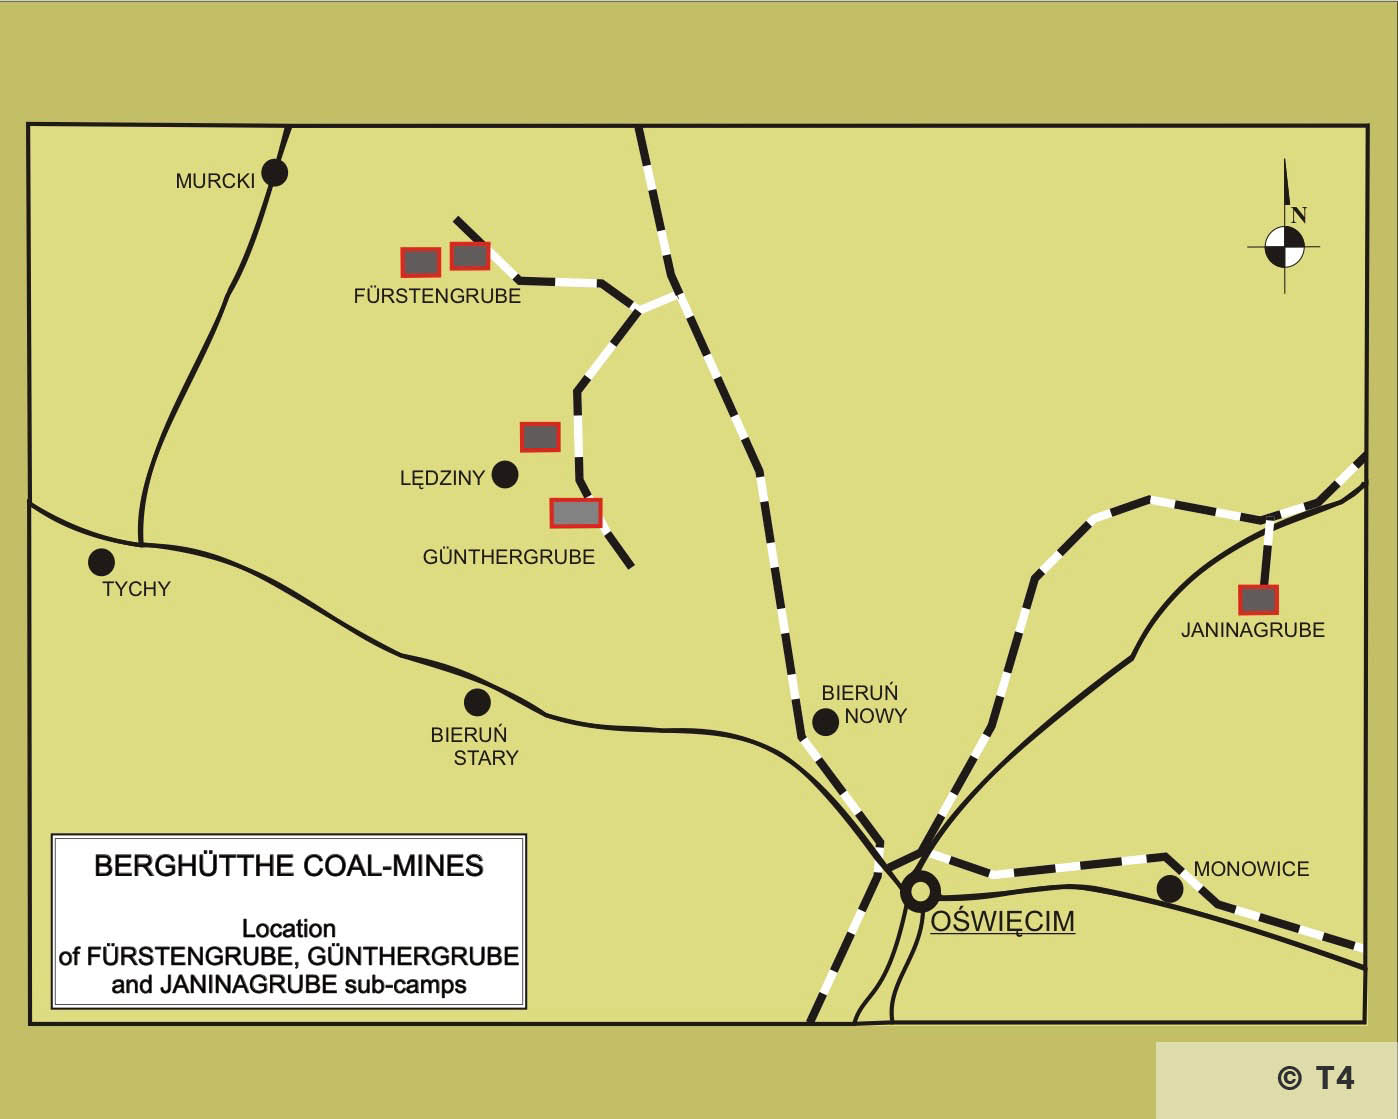 Map of Berghütte coal mines. T4